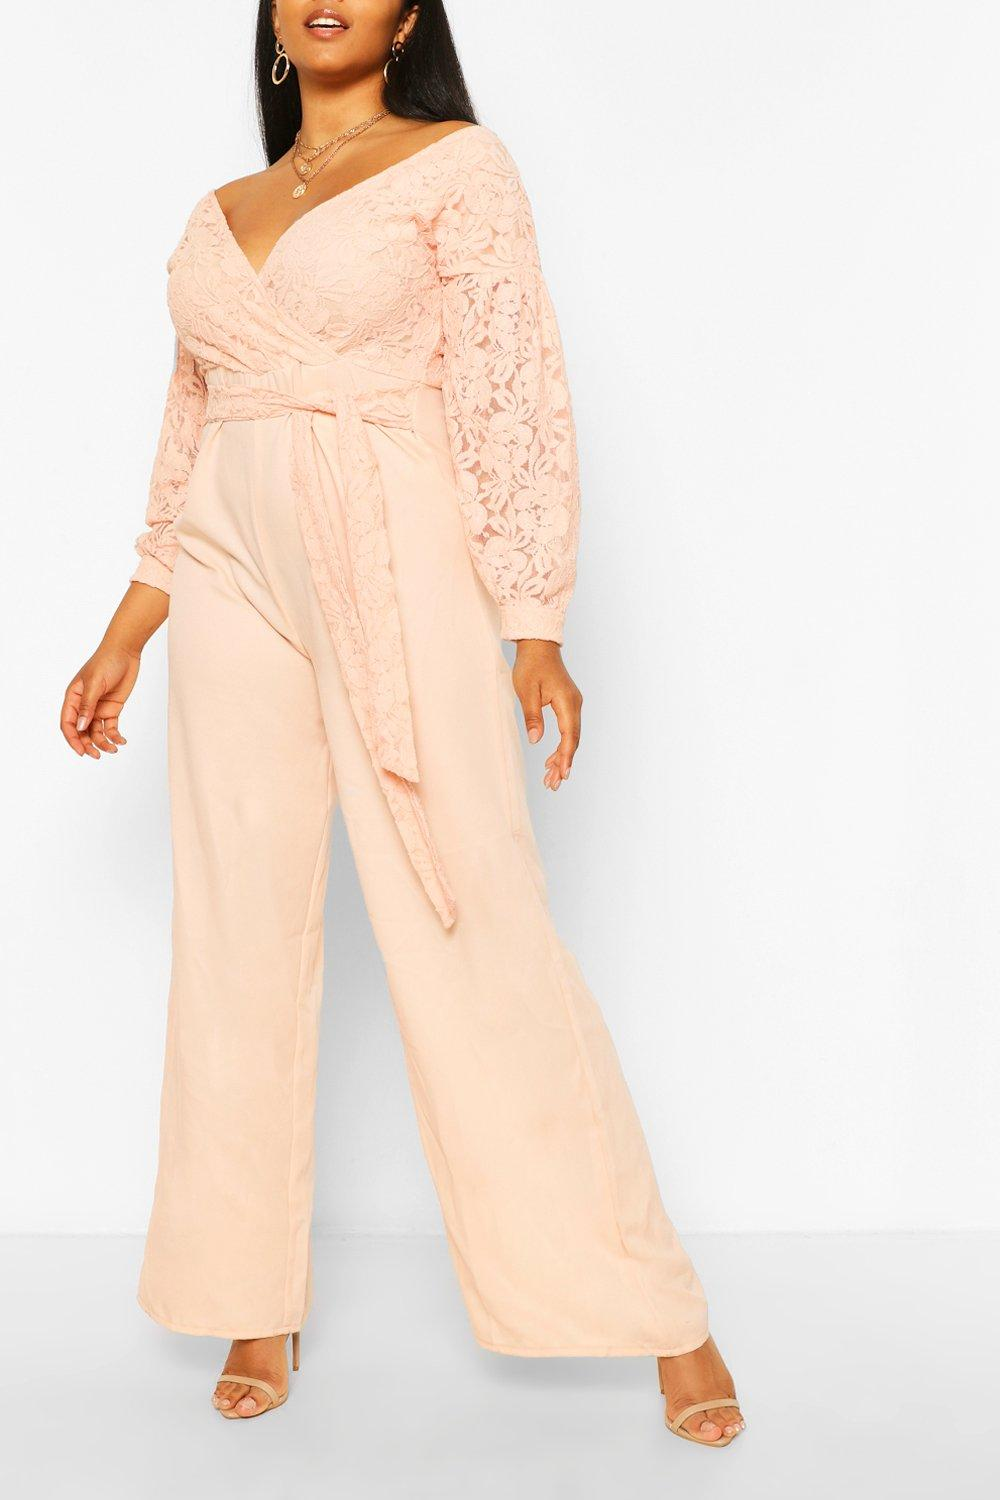 80s Dress Styles | Party, Prom, Formal Womens Plus Lace Off The Shoulder Wide Leg Jumpsuit - Pink - 16 $25.00 AT vintagedancer.com